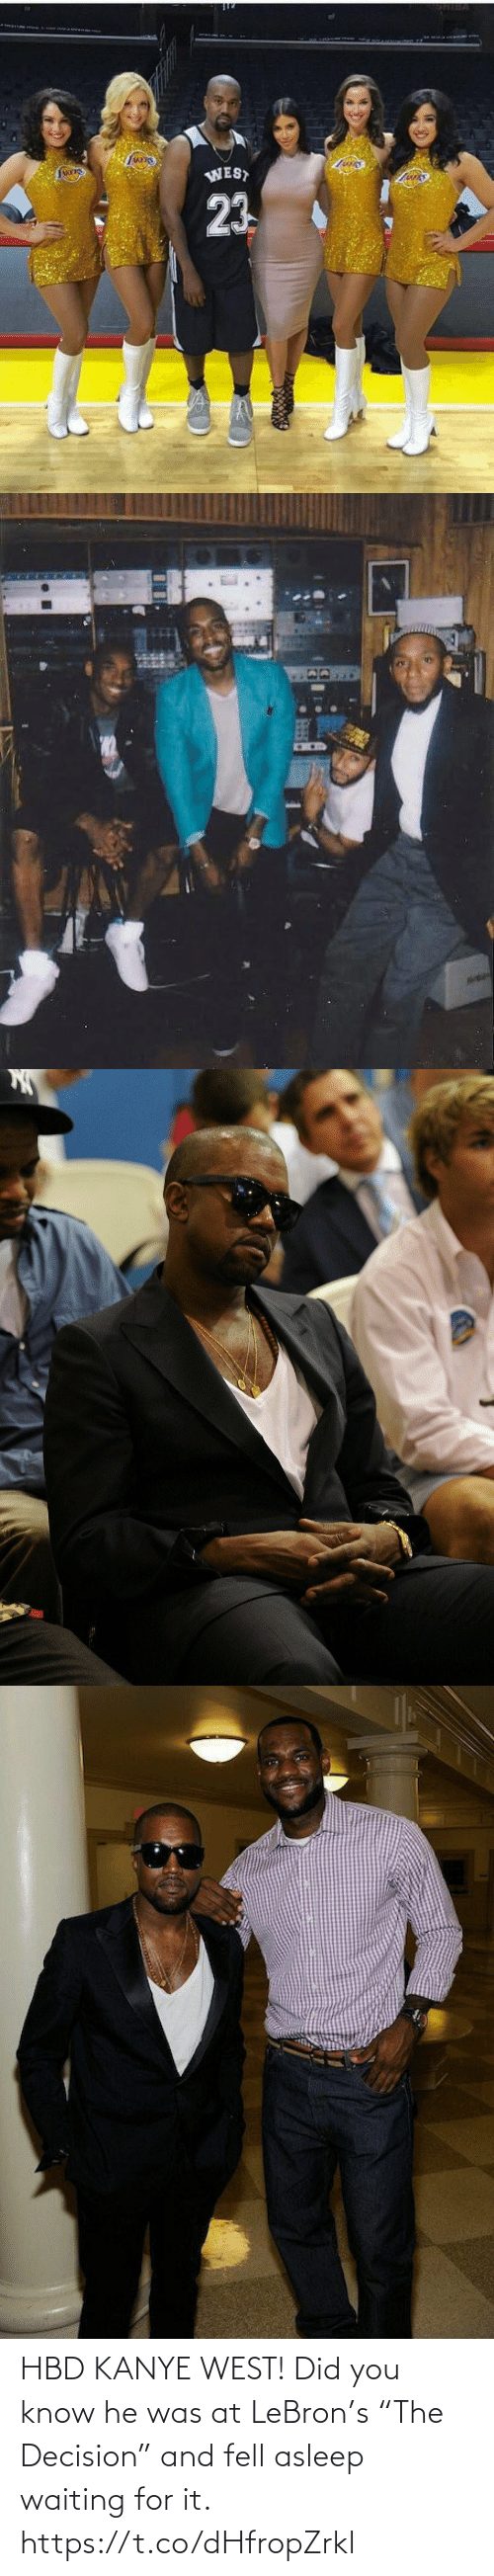 """did: HBD KANYE WEST! Did you know he was at LeBron's """"The Decision"""" and fell asleep waiting for it. https://t.co/dHfropZrkl"""